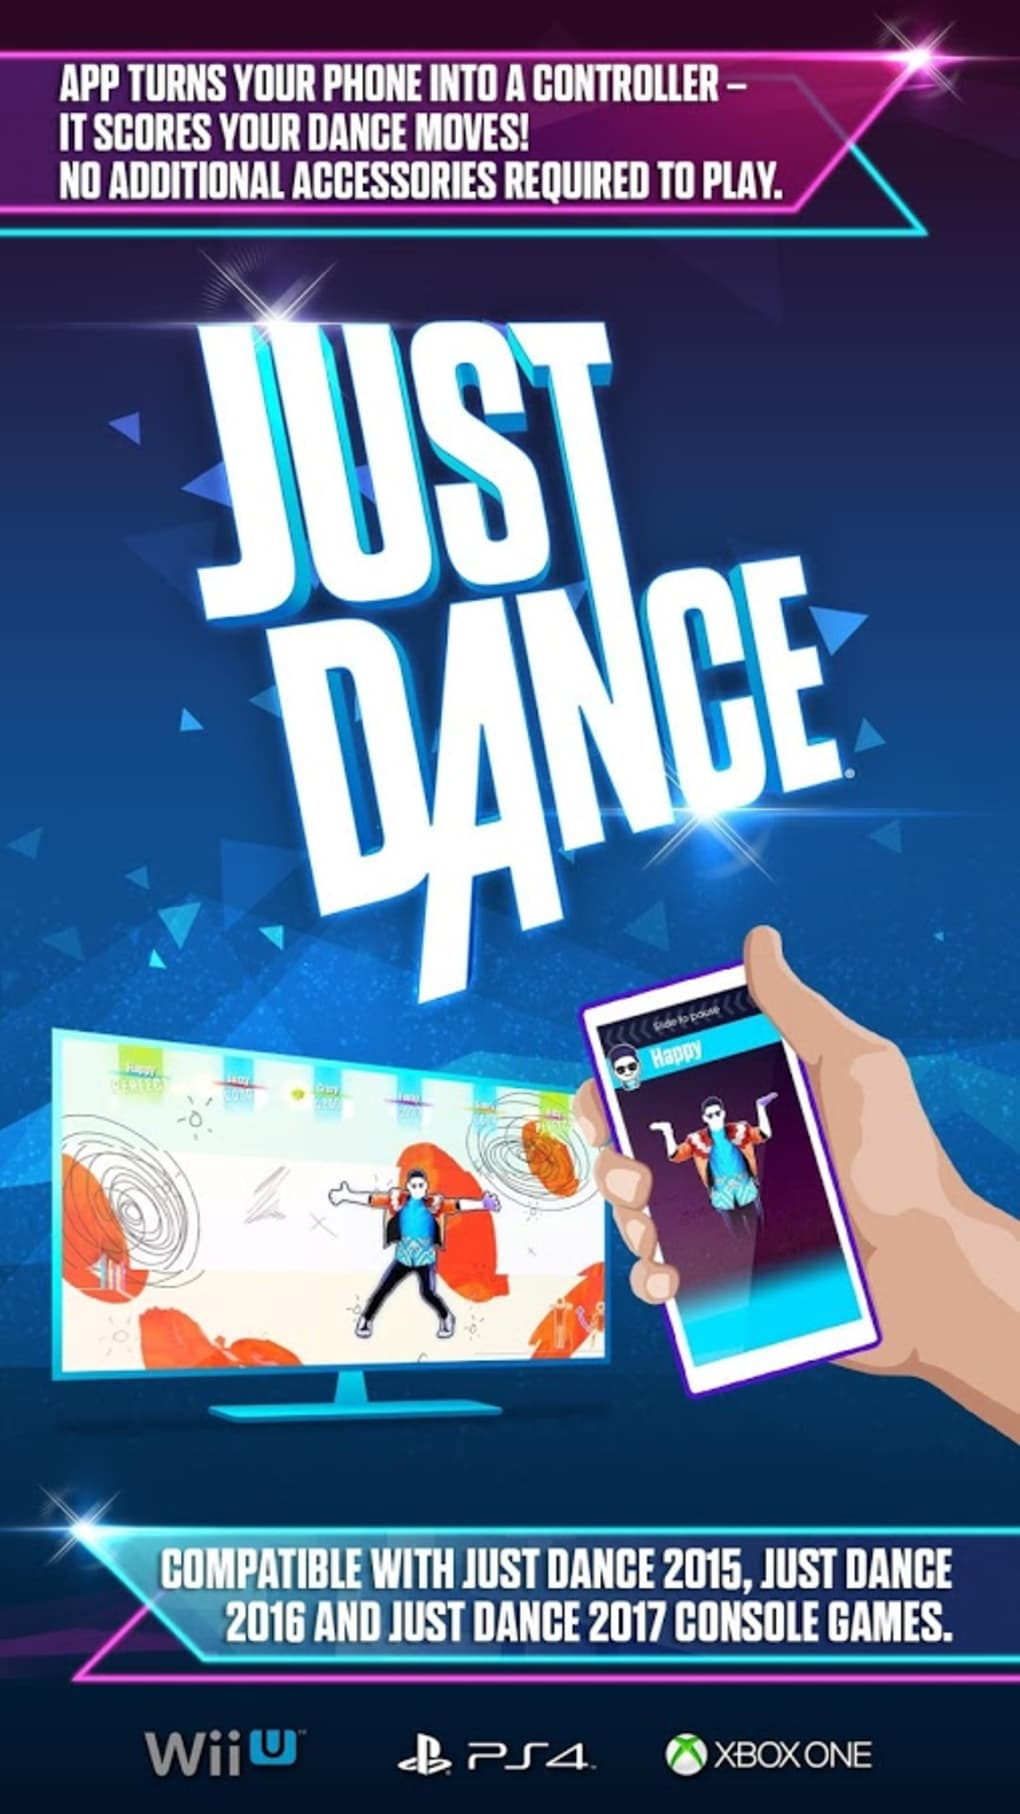 Just Dance Controller for Android - Download